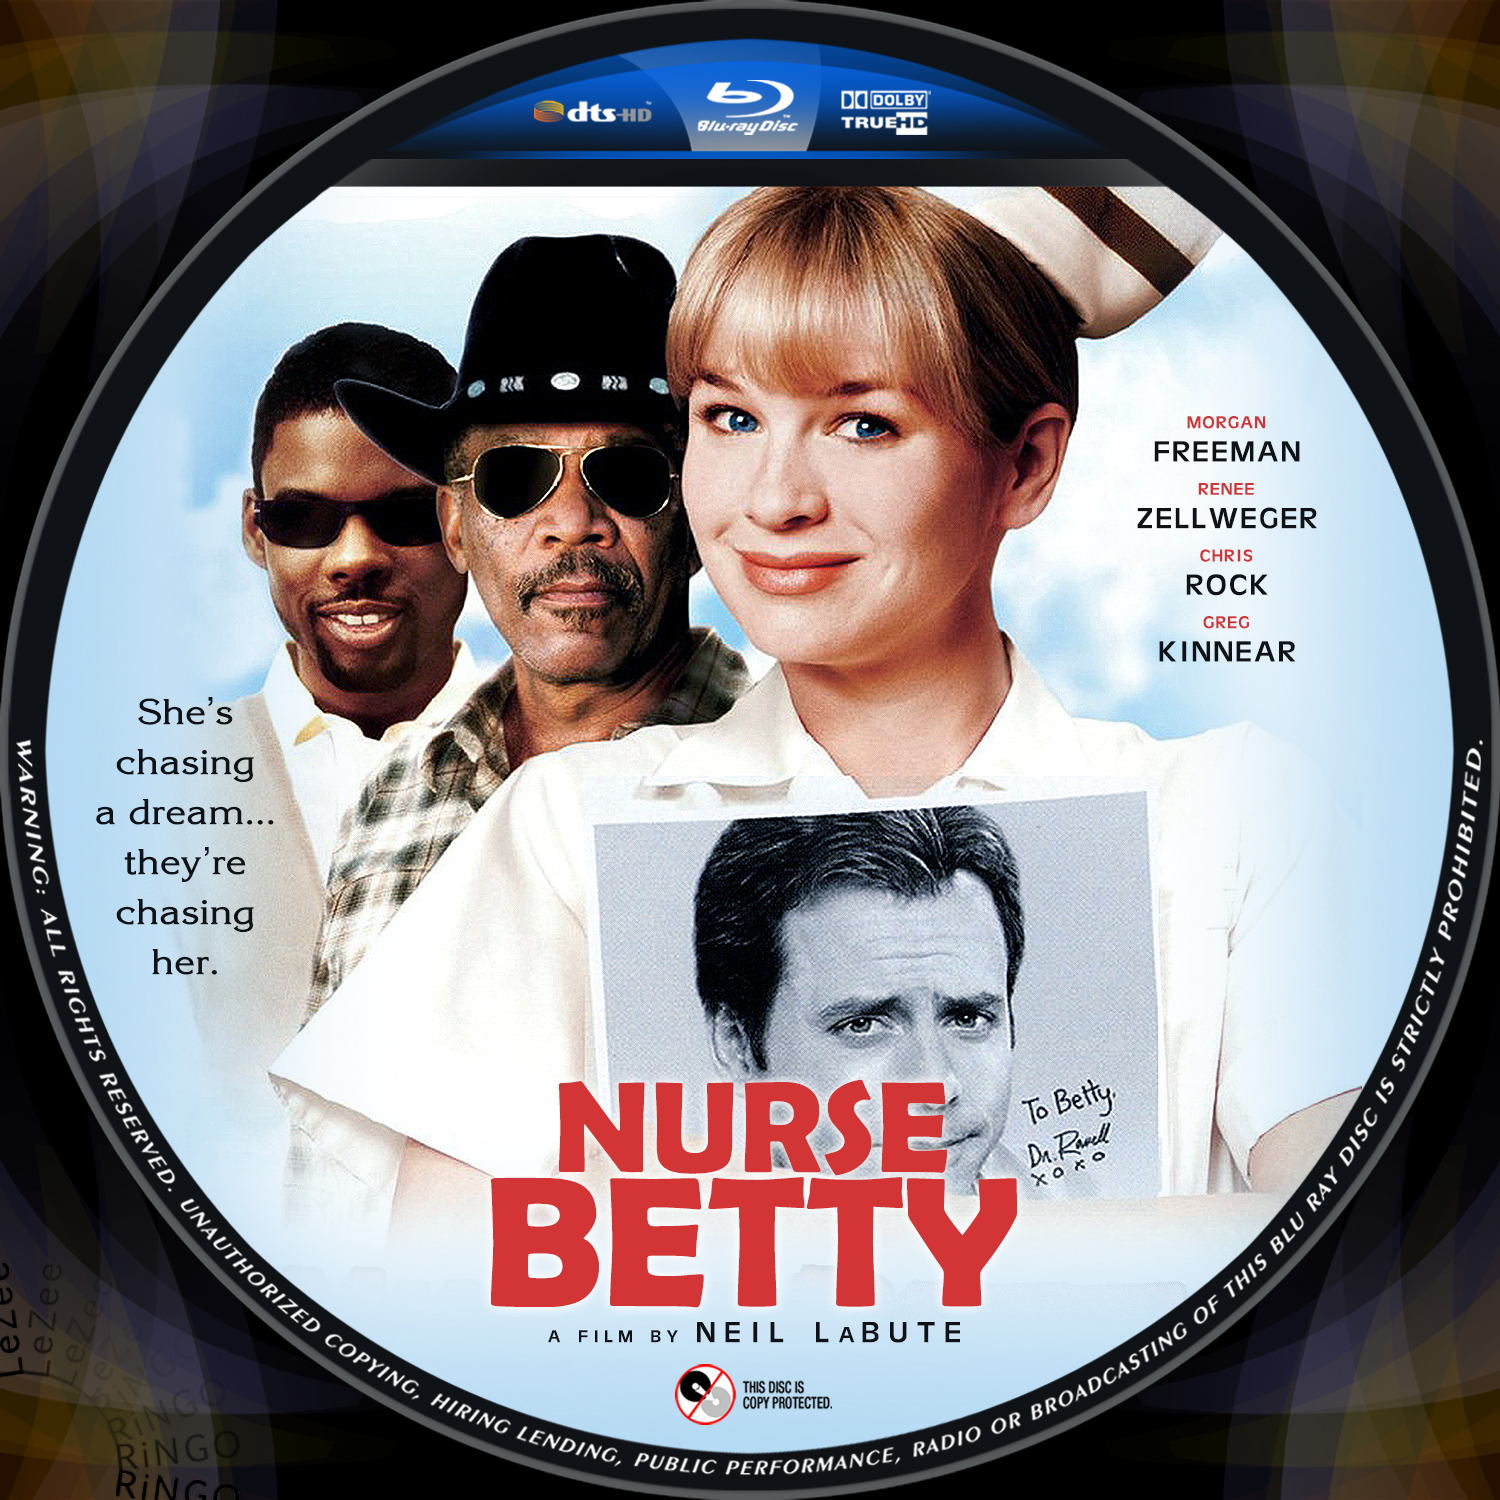 a report of movie nurse betty Nurse betty is a 2000 american black comedy film directed by neil labute and starring renée zellweger as a kansas waitress who suffers a nervous breakdown after witnessing her husband's murder, and starts obsessively pursuing her favorite soap actor (greg kinnear), while in a fugue state.